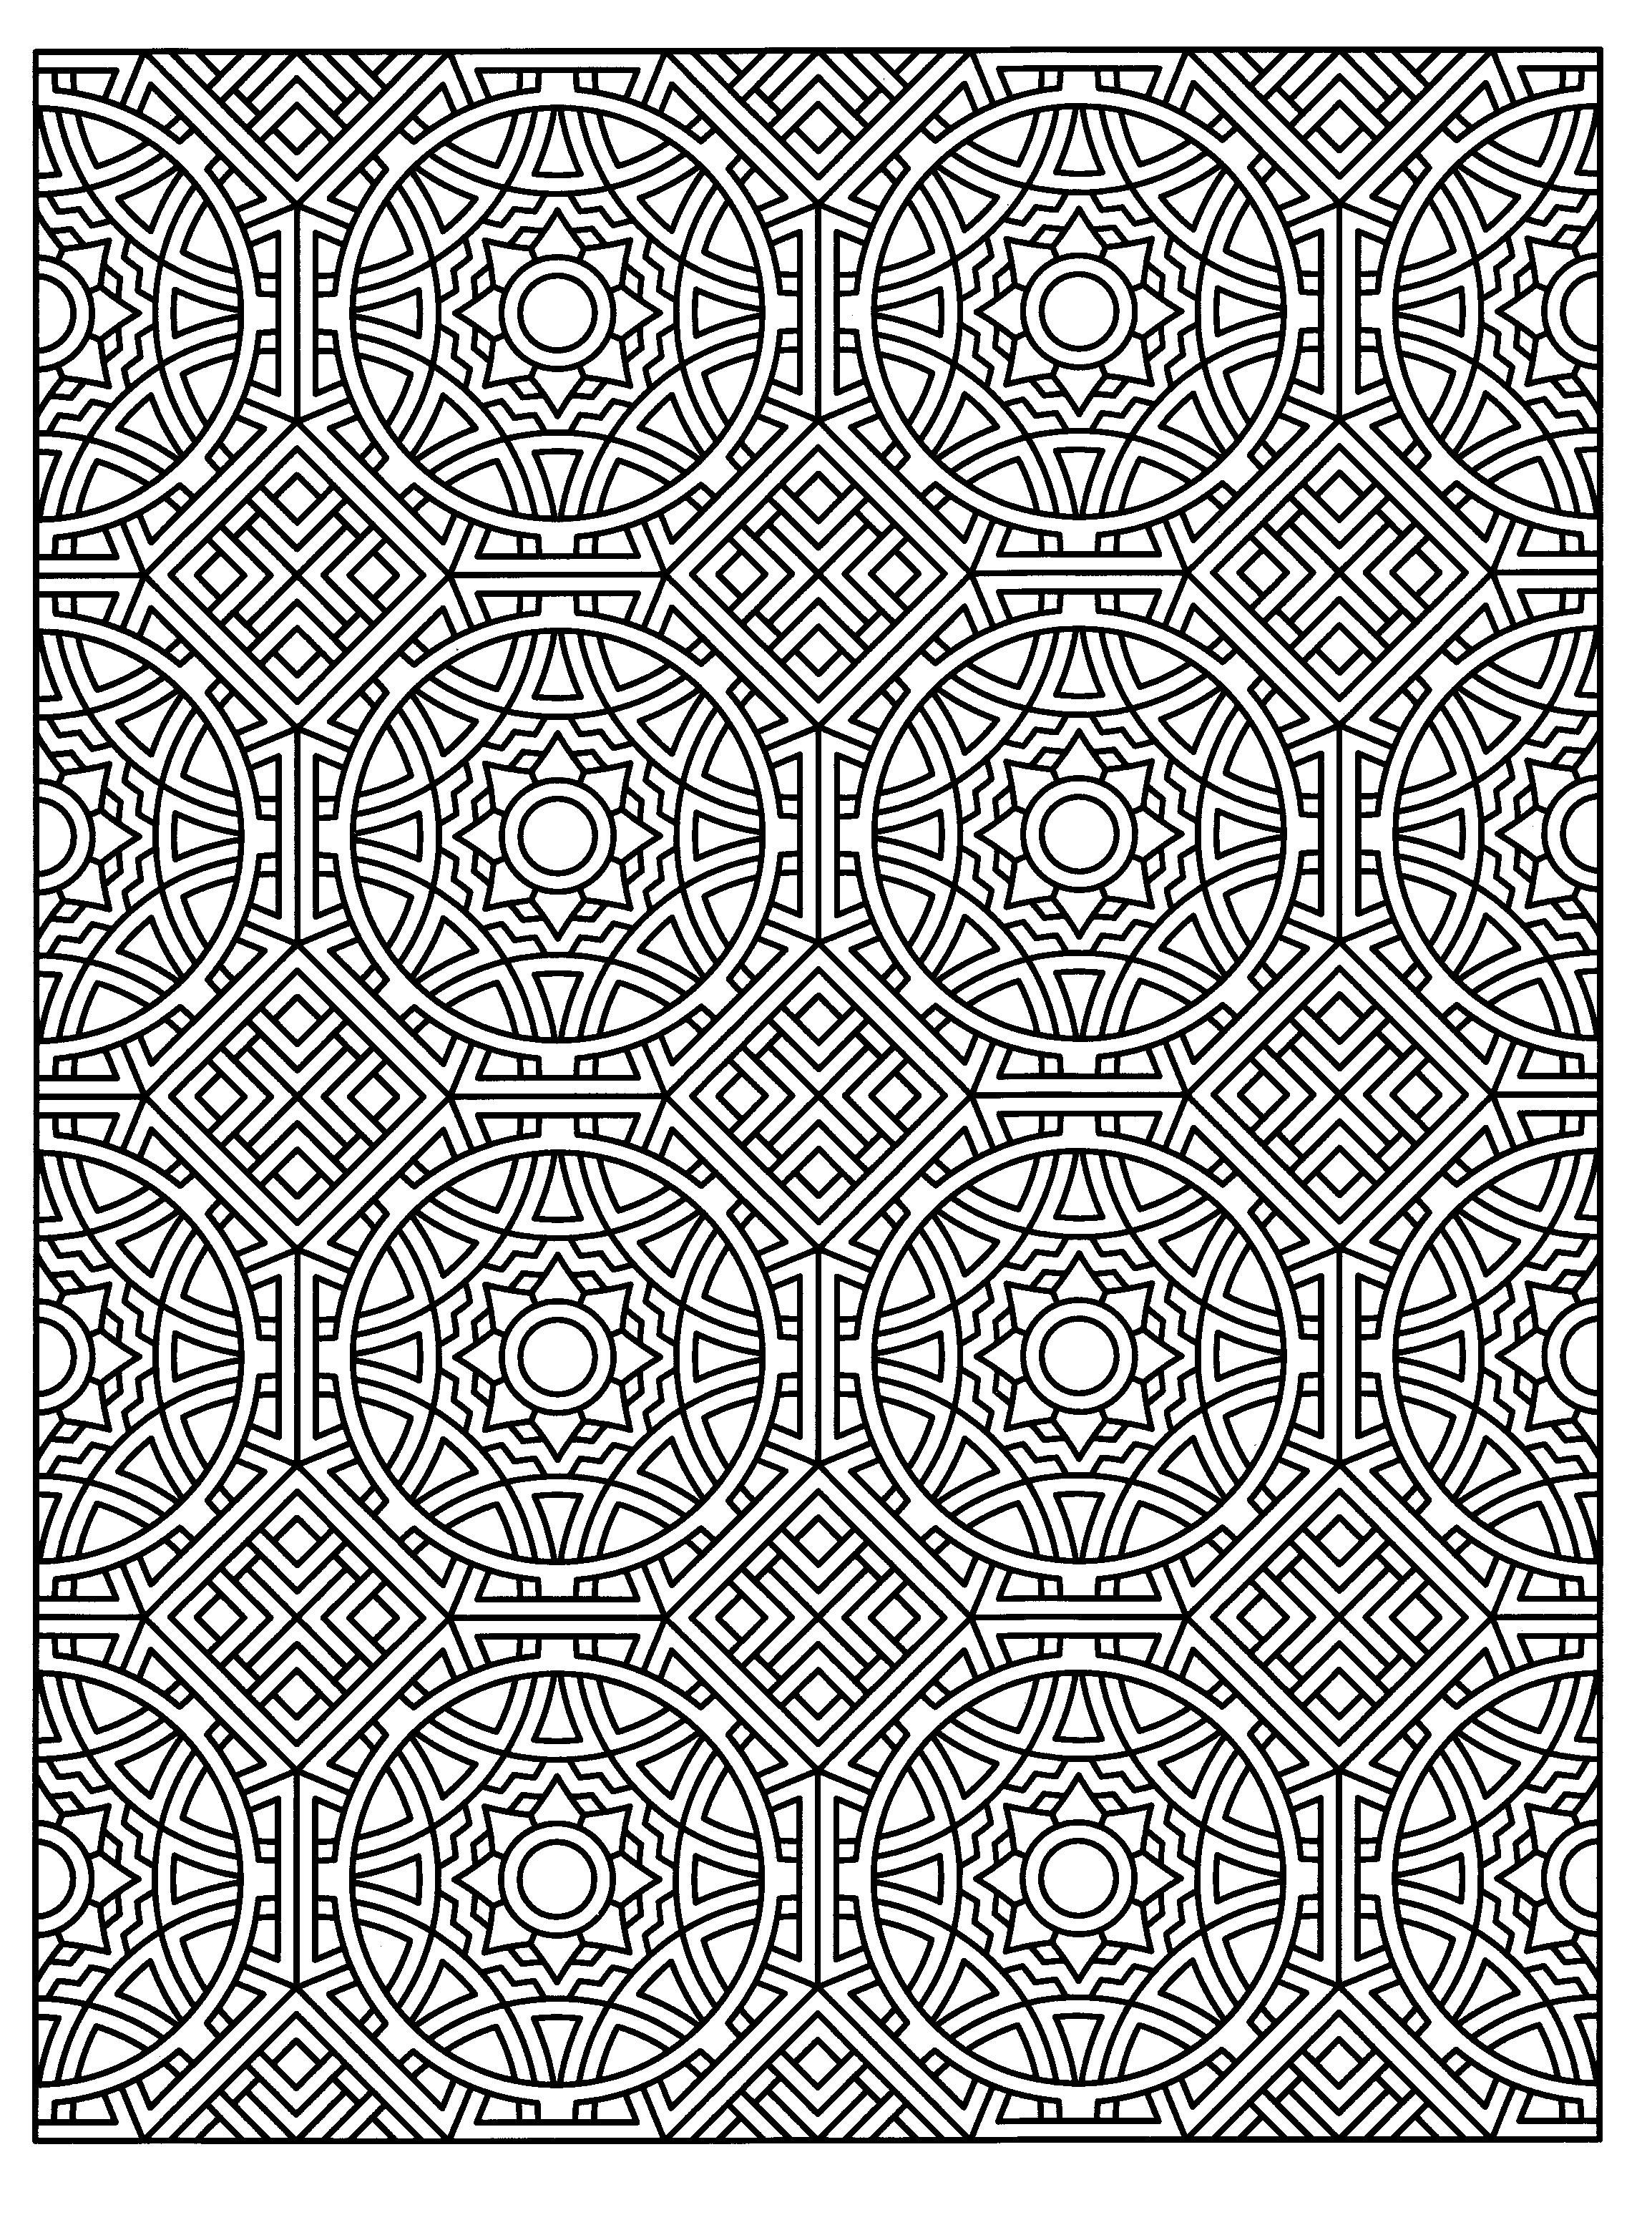 Dover coloring pages for grownups favorite coloring supplies